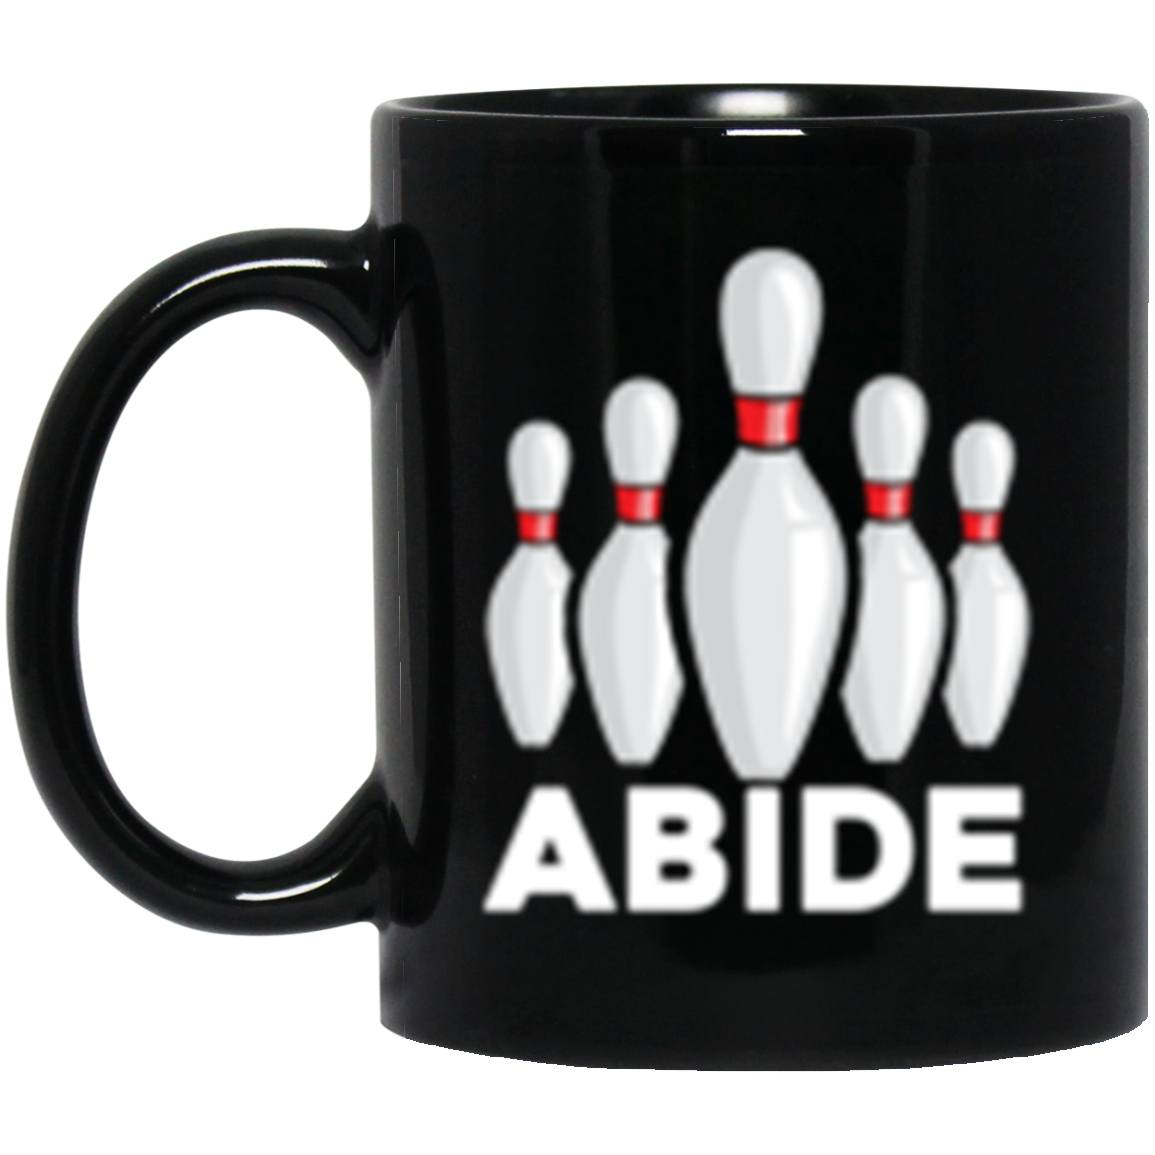 Drinkware - Abide Pins Black Mug 11oz (2-sided)